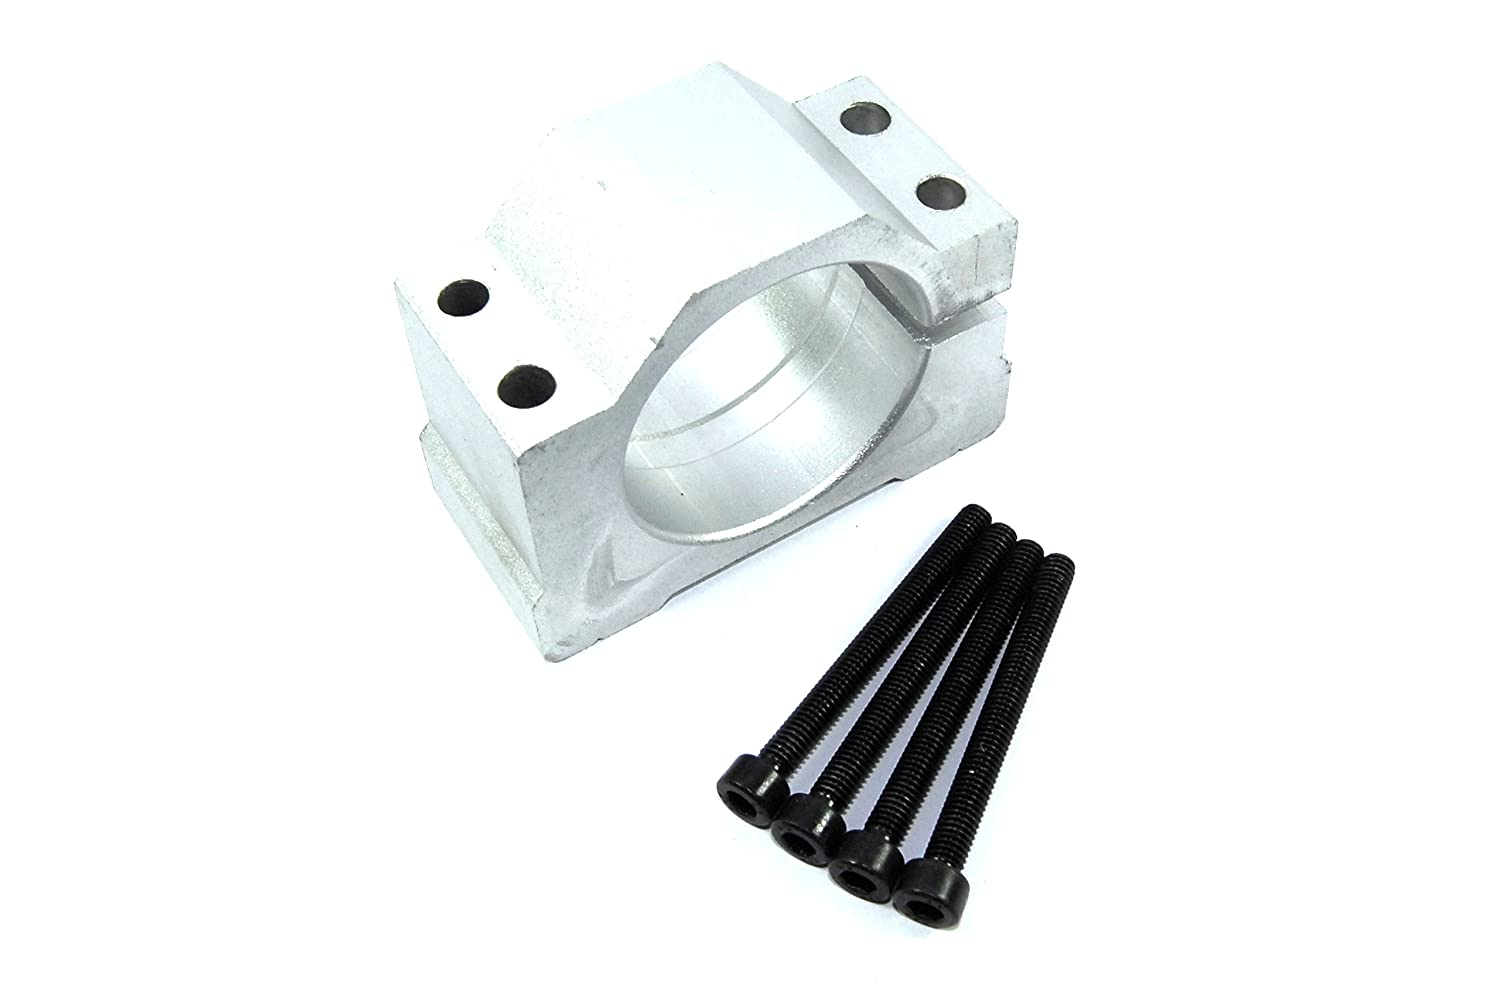 52mm Spindle Mount Aluminium Clamp ER11 CNC Router Milling